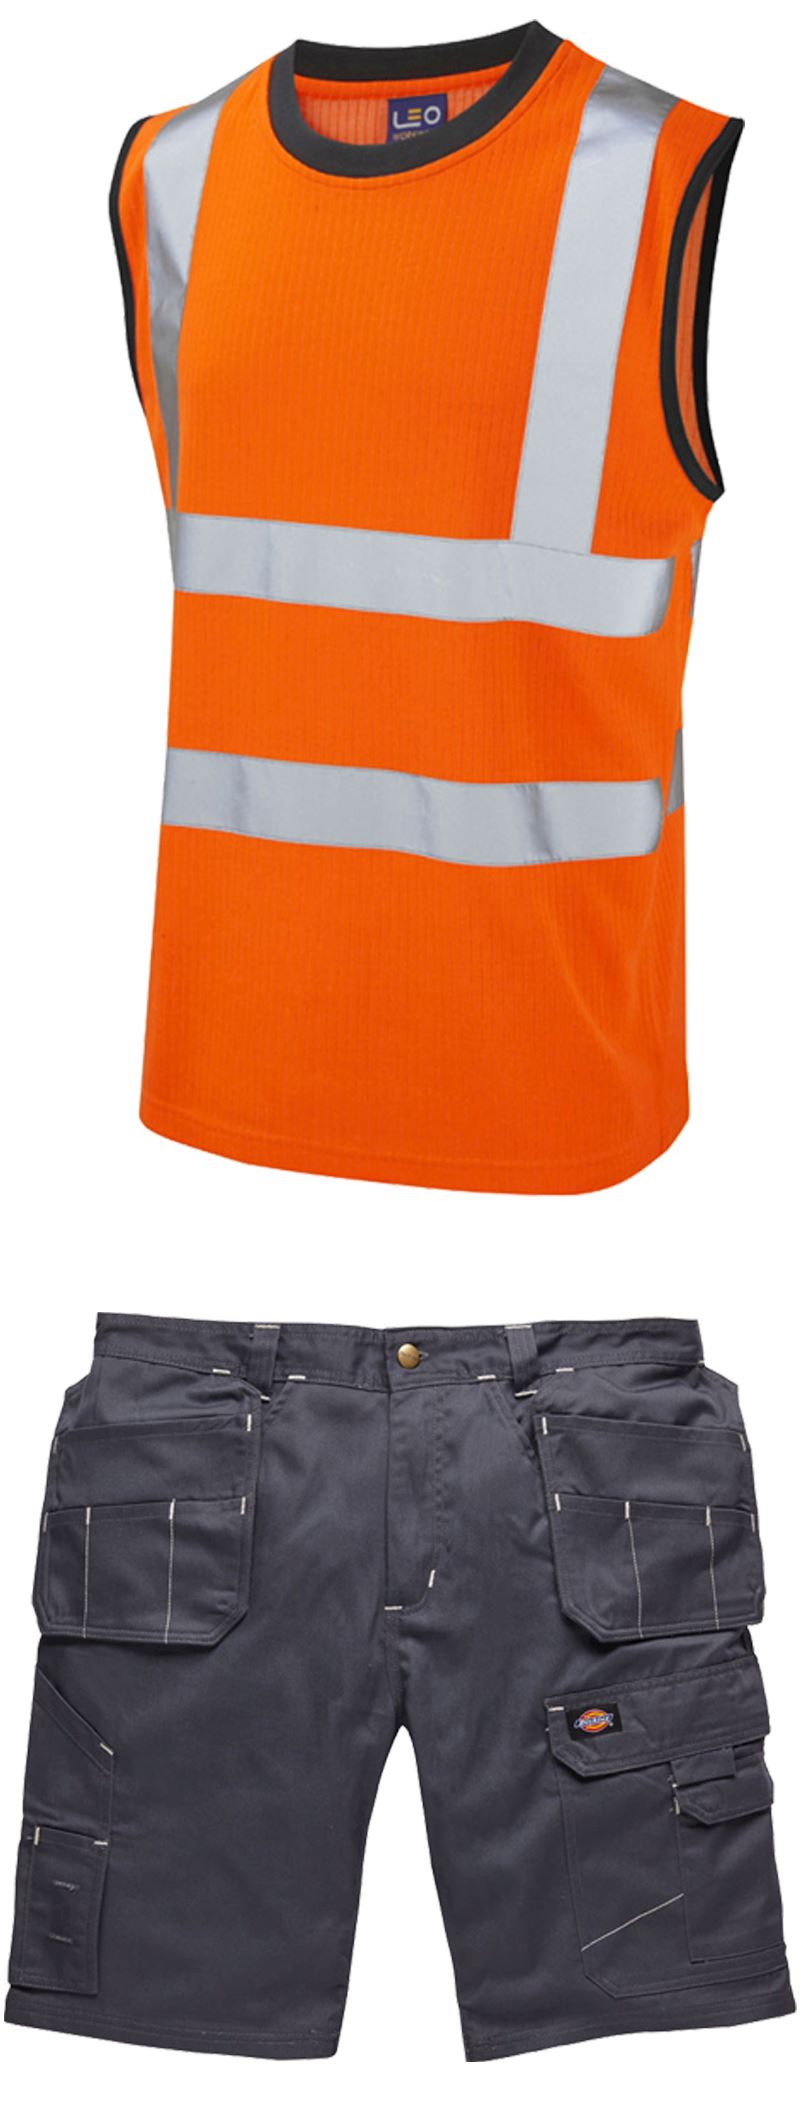 Summer Workwear - Vest and Shorts